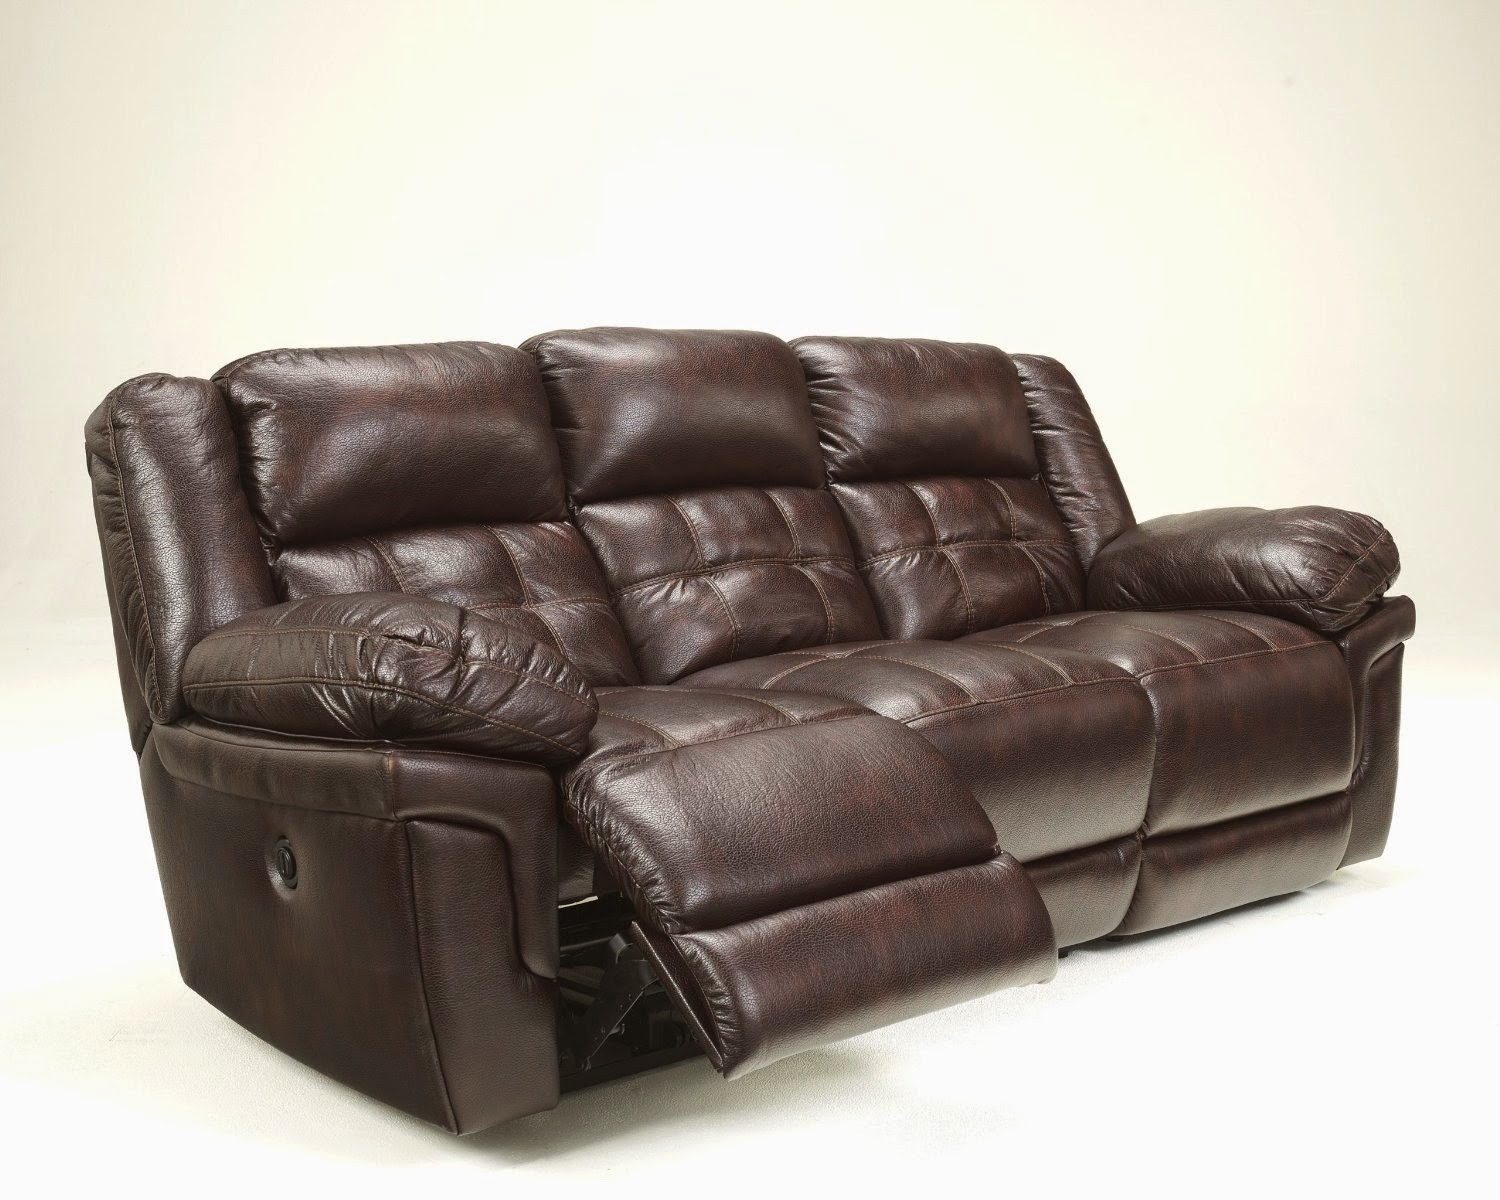 Ashley Faux Leather Sofa Reviews Bed Melbourne Harvey Norman Where Is The Best Place To Buy Recliner